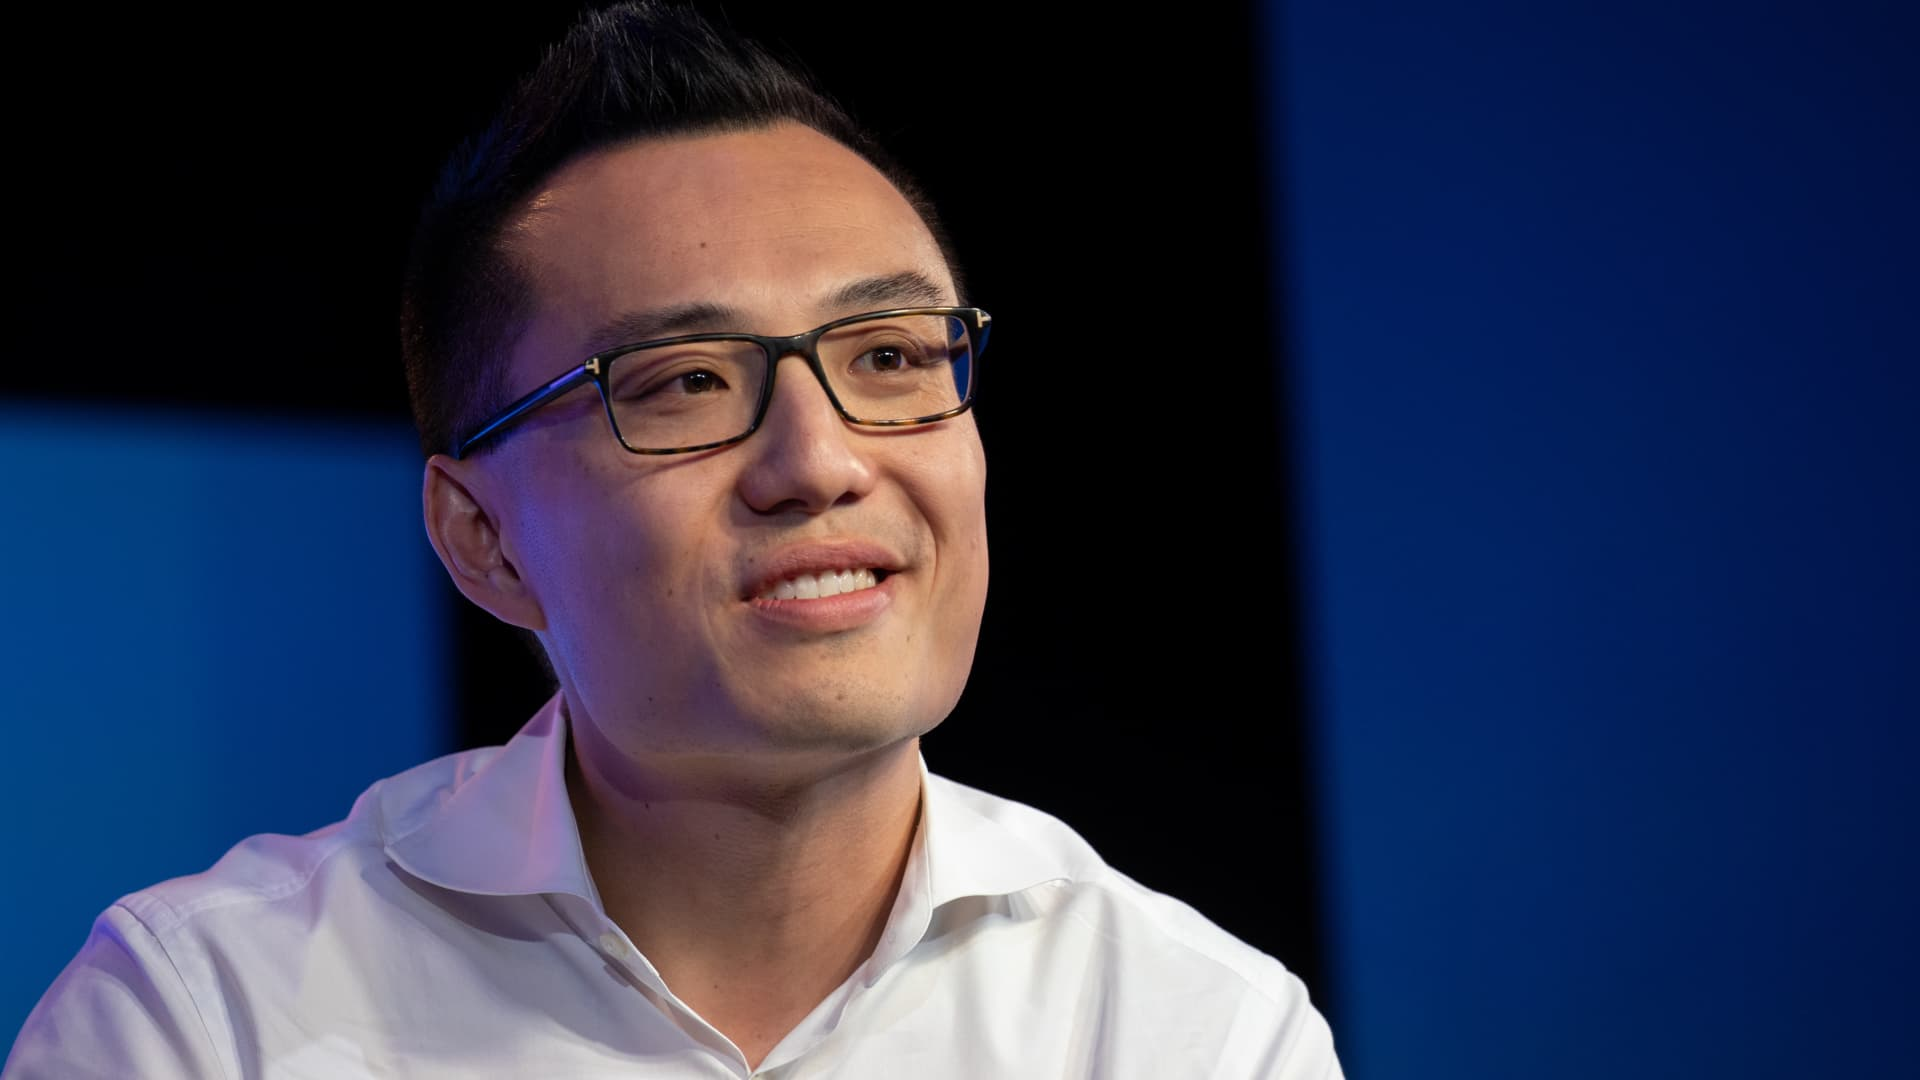 Tony Xu, co-founder and chief executive officer of DoorDash Inc., smiles during the Wall Street Journal Tech Live conference in Laguna Beach, California, U.S., on Tuesday, Oct. 22, 2019.